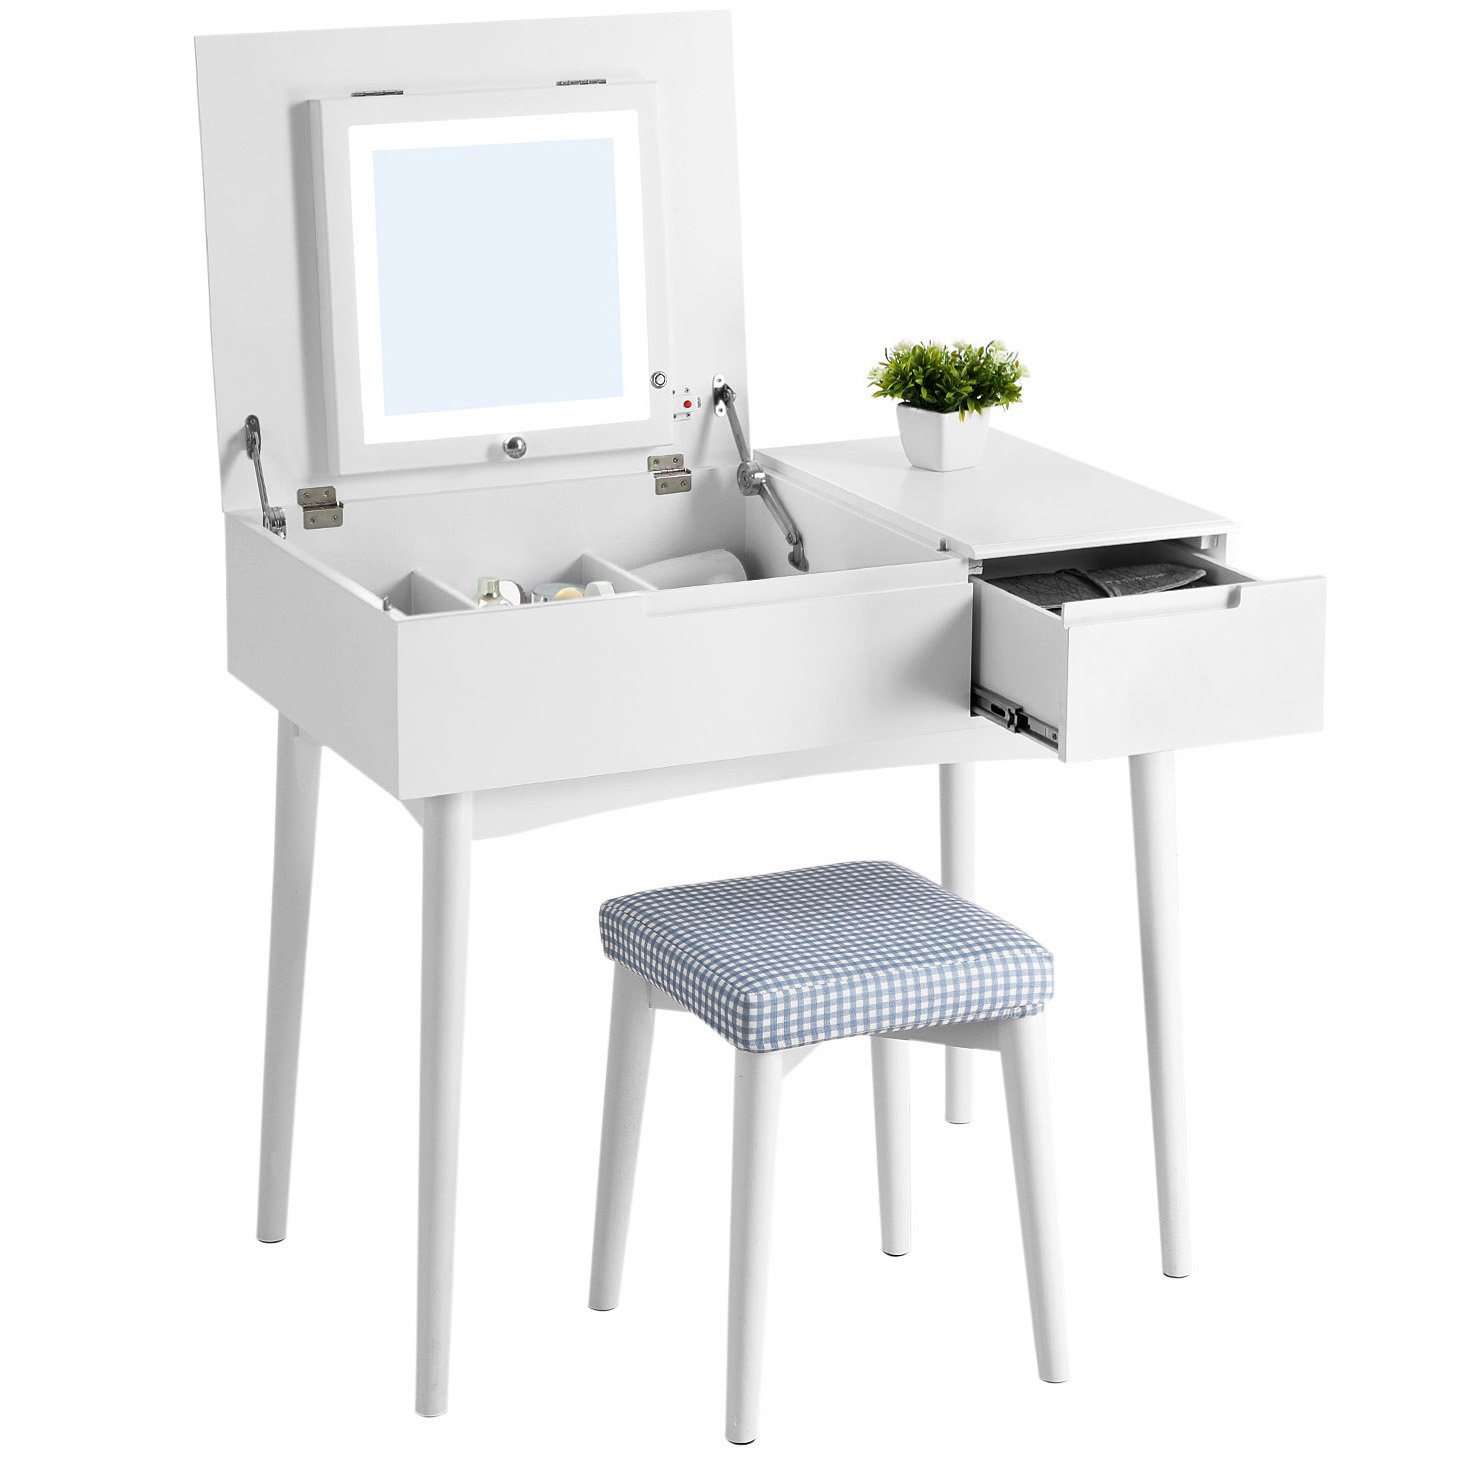 SONGMICS Vanity Table Set with Dimmable LED Lights and Flip Top Mirror Makeup Dressing Table with Large Sliding Drawers Cushioned Stool White URDT20W